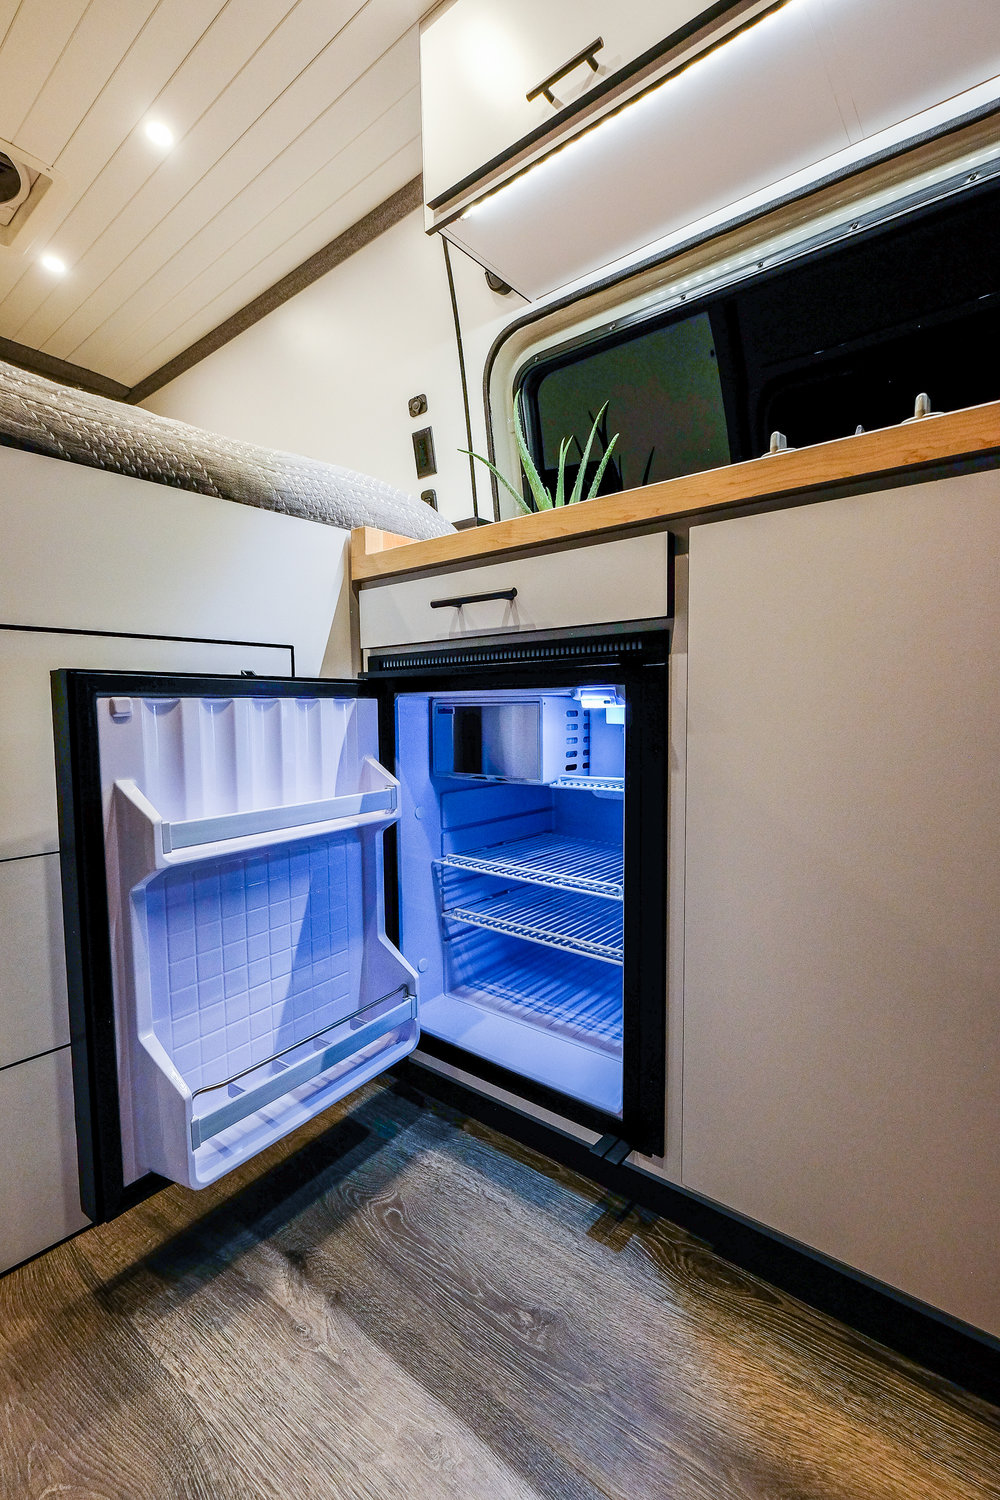 JOMOVAN'S kitchenette is equipped with an  Isotherm 85 Elegance  refrigerator, two burner cook top, a high capacity water filtration system and a jet black filtered drinking faucet to match the modern aesthetic.